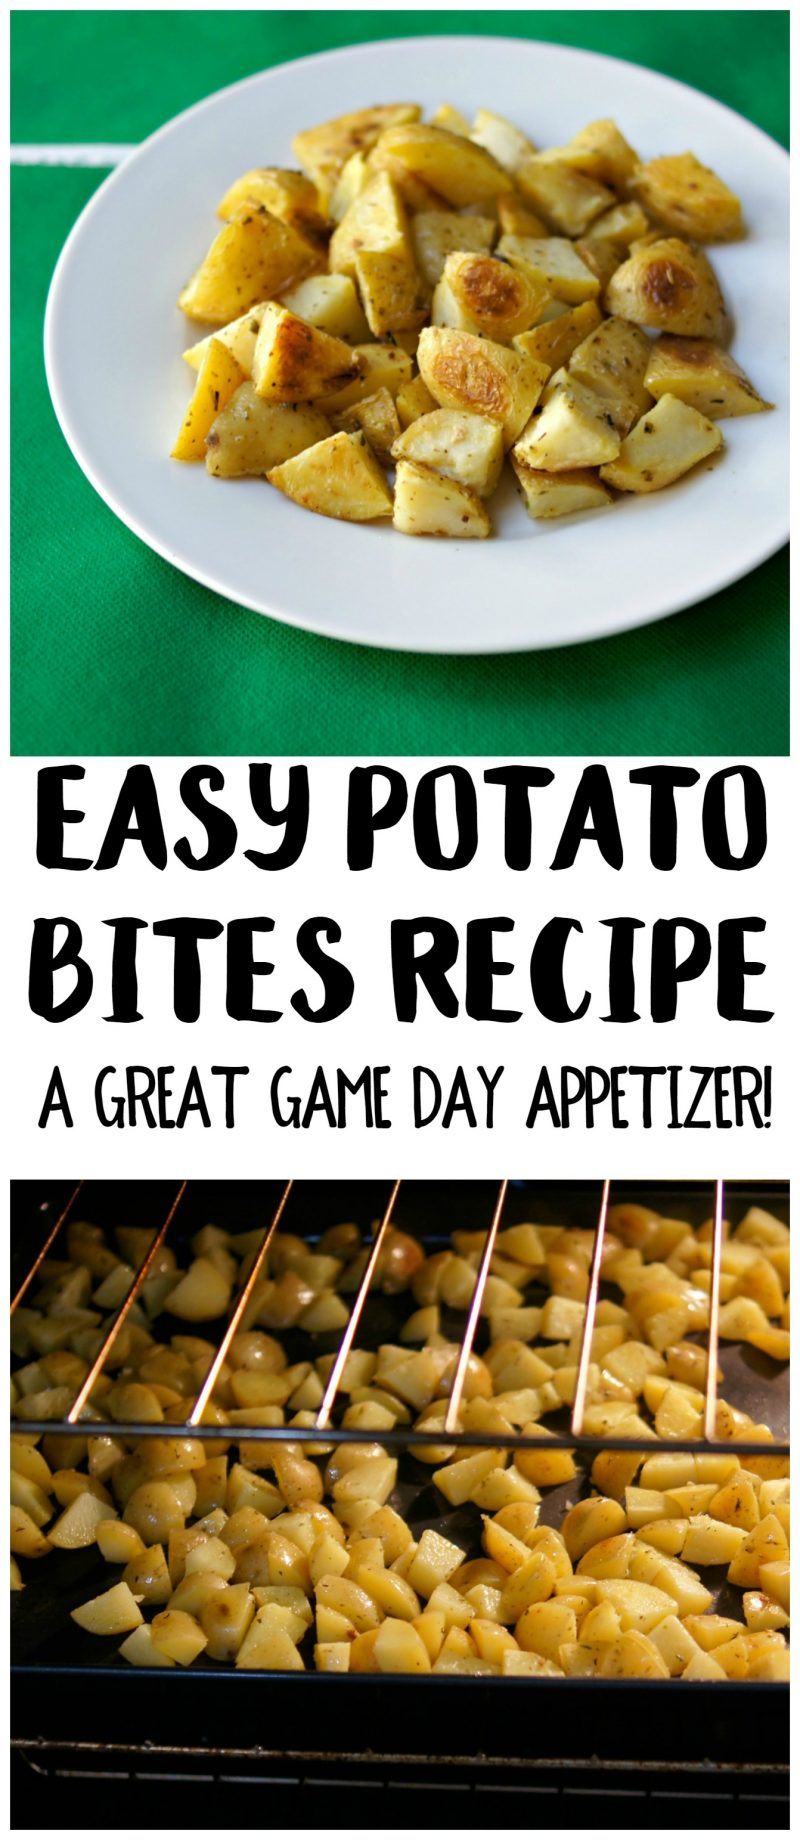 If you're looking for great football party food or appetizers for parties for large families, you can't go wrong with these Easy Potato Bites! This recipe is simple to make and quick, too, so you can spend more time at the party! {ad}